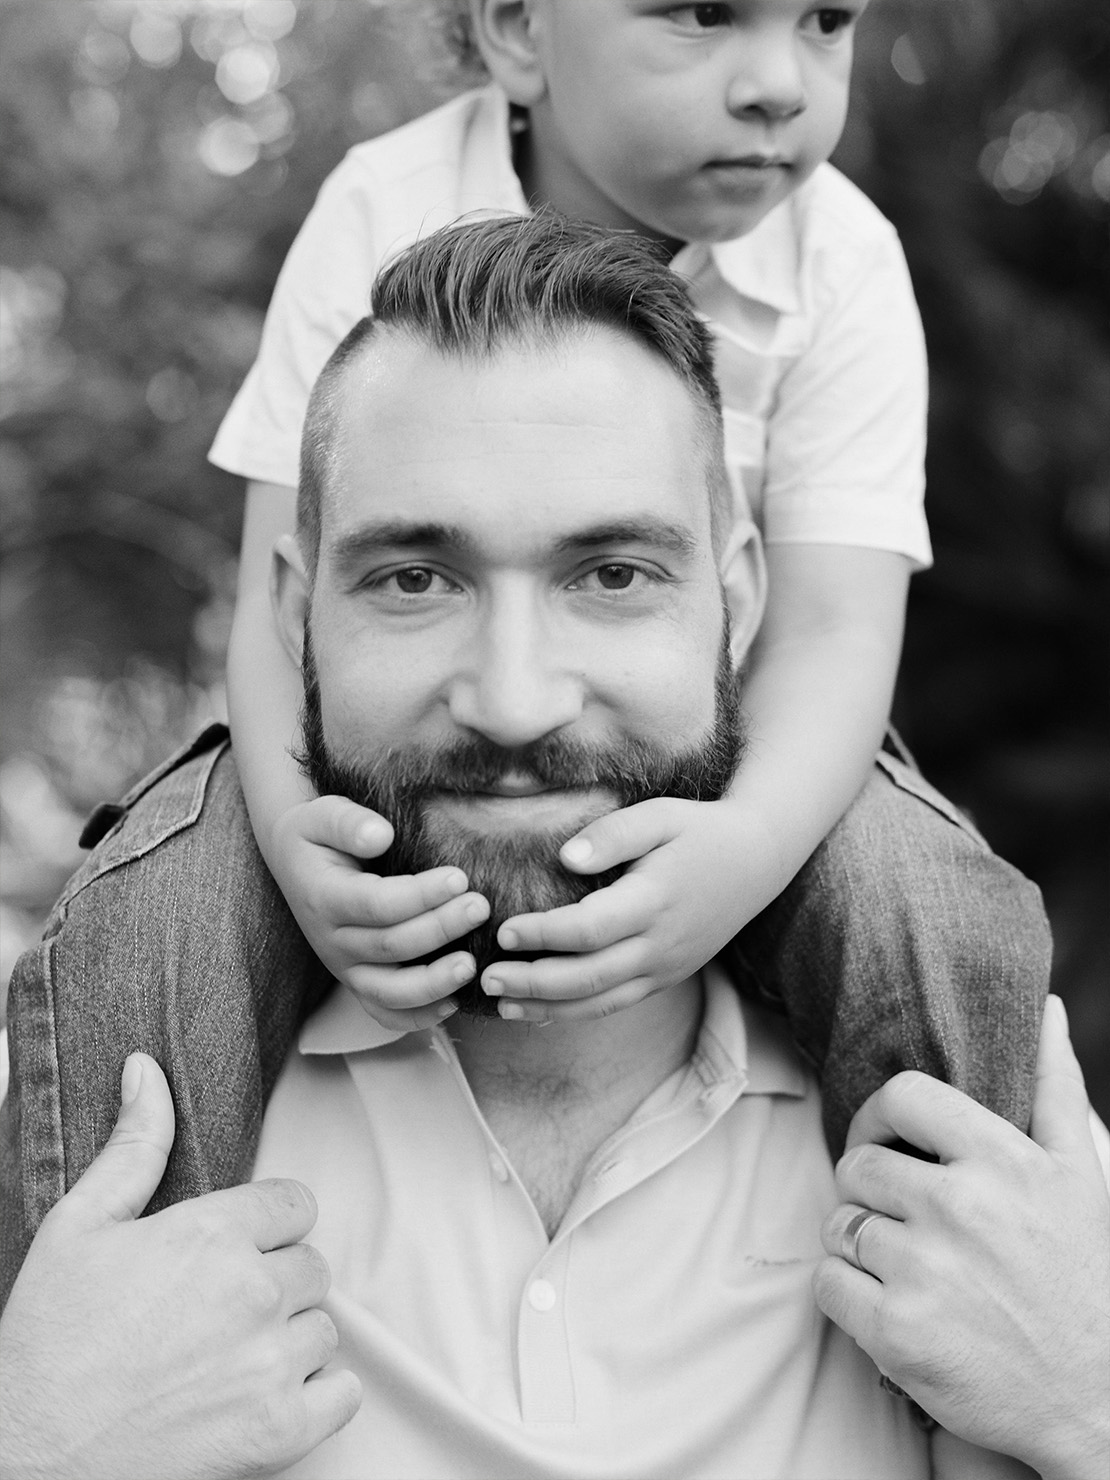 01_father_son_winter_park_florida_Family_portrait_fine_art_photography